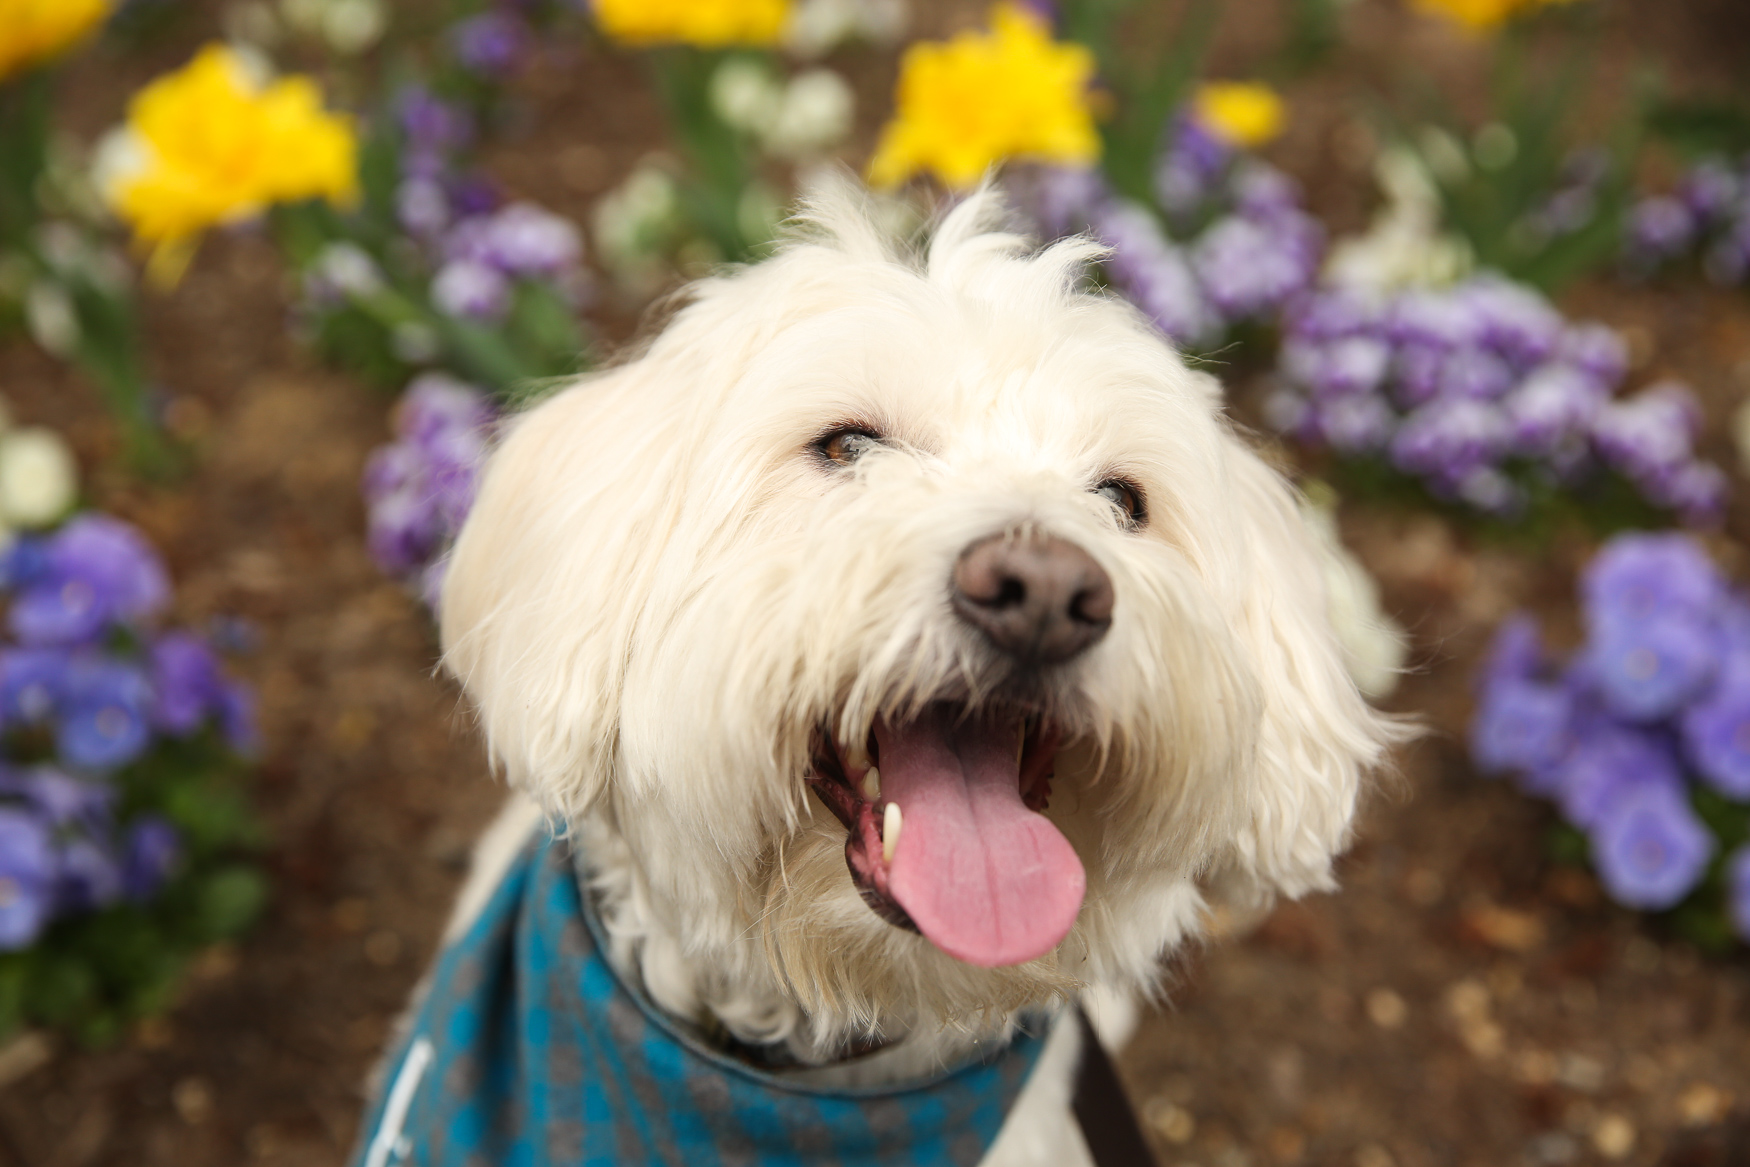 "Meet Finn, a 5-year-old Lhaeskimoshdoodle... say what now?? Everyone always asks what breed Finn is so his pawrents did a doggy DNA test and found he is a Mini Poodle, American Eskimo,Lhasa Apso, Shih Tzu, Mini Schnauzer and Swiss White Shepherd mix -- what a mouthful! Finn came to live with his family 3.5 years ago from a rescue group called Homeward Trails. ""We saw his sad, overgrown, matted picture online and fell in love with his face,"" said Finn's mom. ""We went to look at him, but he was at a foster, so we looked at a couple of other dogs and nothing really clicked. When we were leaving, his foster mom happened to stop in to get meds for him and the rest is history."" Finn loves his ball, treats, belly rubs, meeting anyone and everyone, hiking, French fries and road trips. He's not a fan of the dishwasher or washing machine, hot weather, lobster pounds and loud noises in general. Finn is also a big Nats fan, and loves going to Pups in the Park night! He sits in his seat and watches the game the entire time! If you're interested in having your pup featured, drop us a line at aandrade@dcrefined.com, but we do have quite the waiting list right now so we appreciate your patience! (Image: Amanda Andrade-Rhoades/DC Refined)"